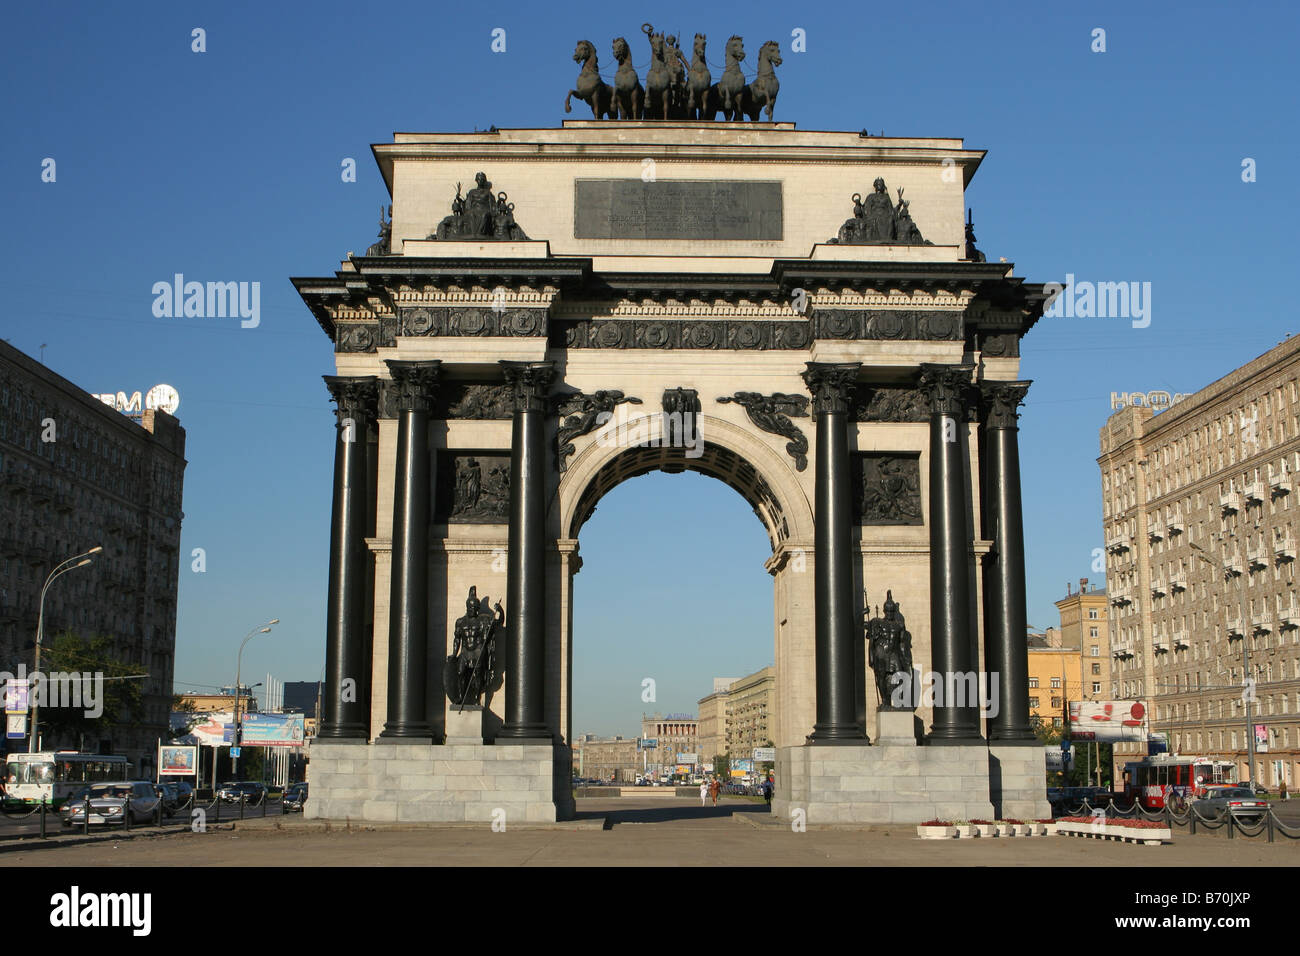 Moscow. Triumphal Arch - Stock Image